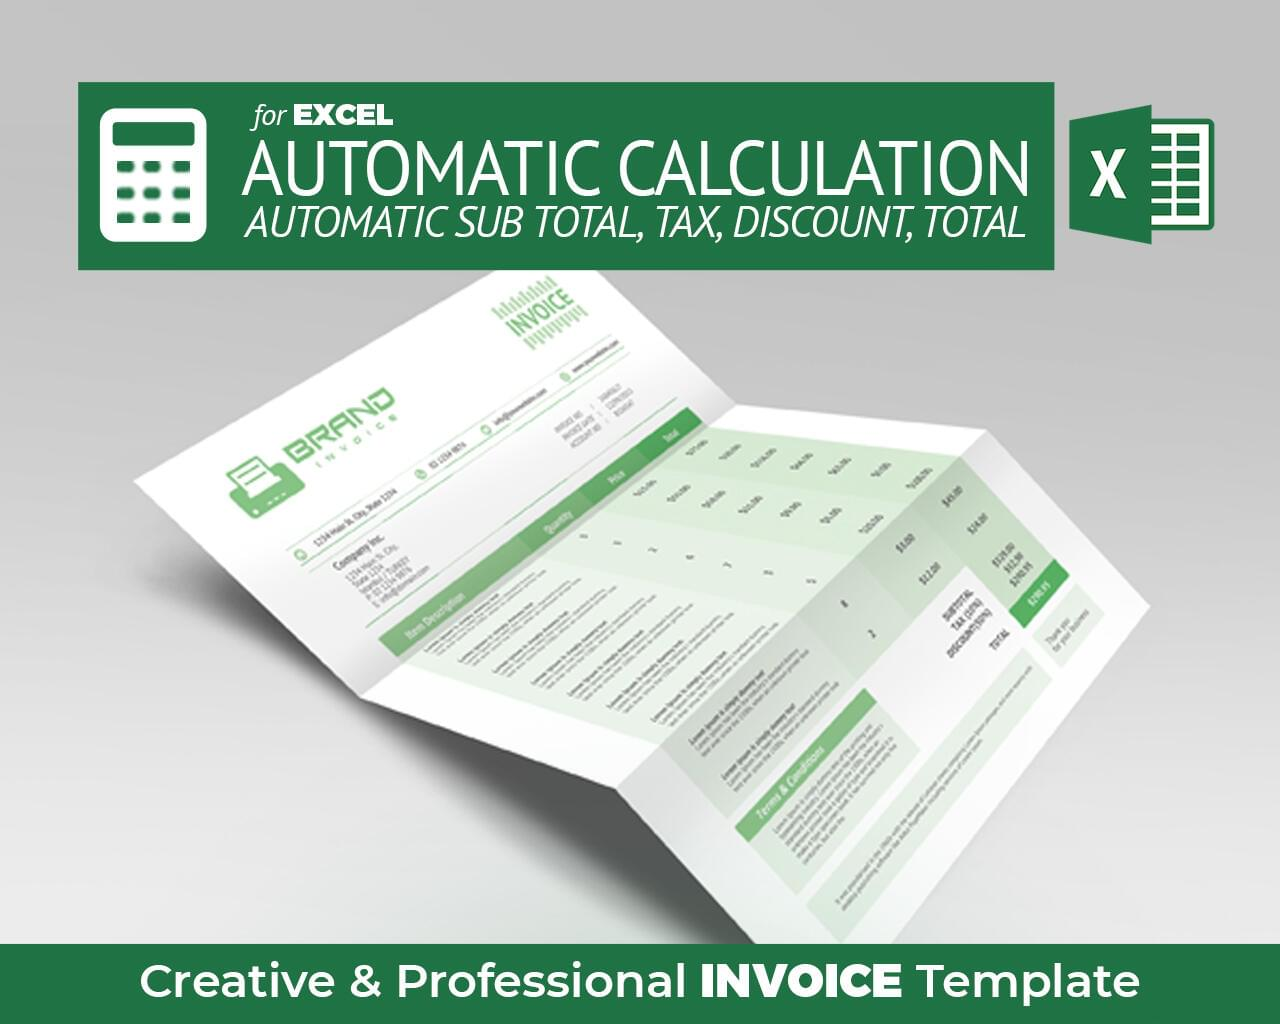 Excel Invoice & Proposal by hsynkyc - 118240